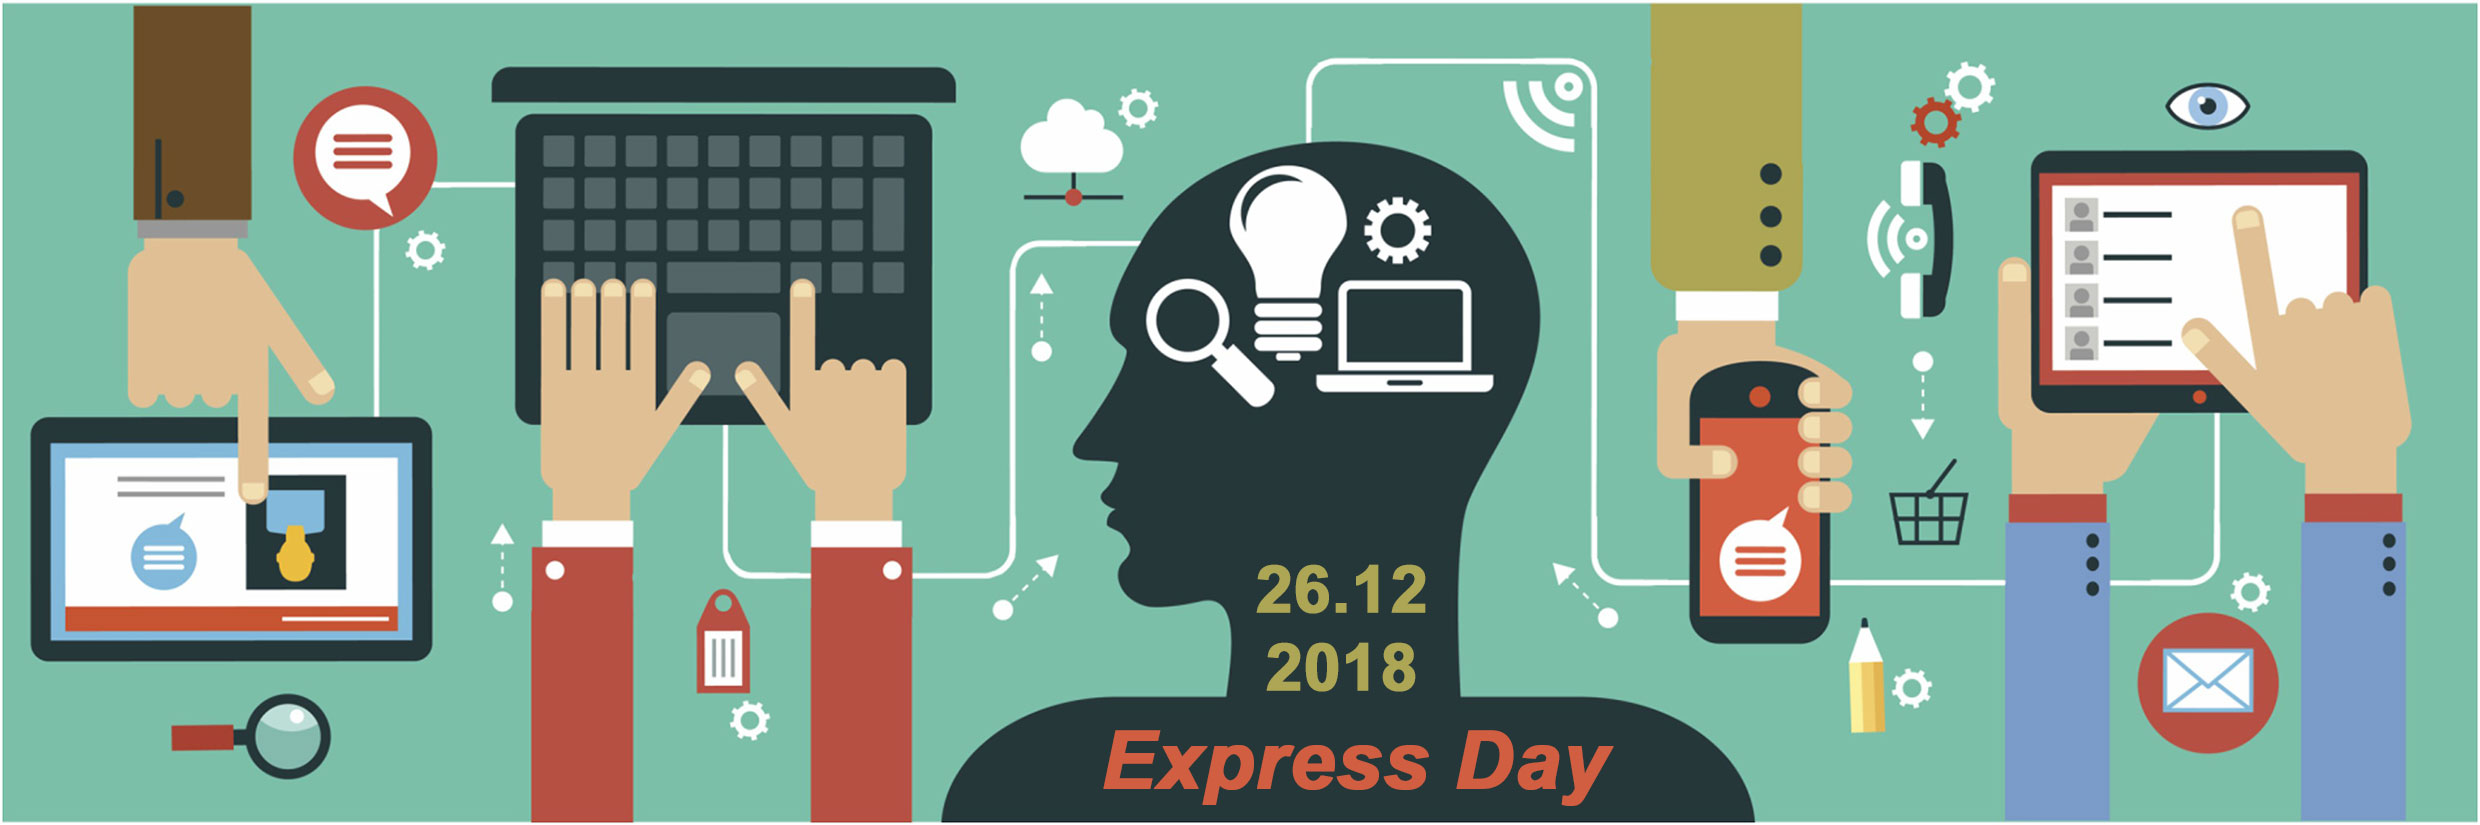 Express Day shapka bv 26.12